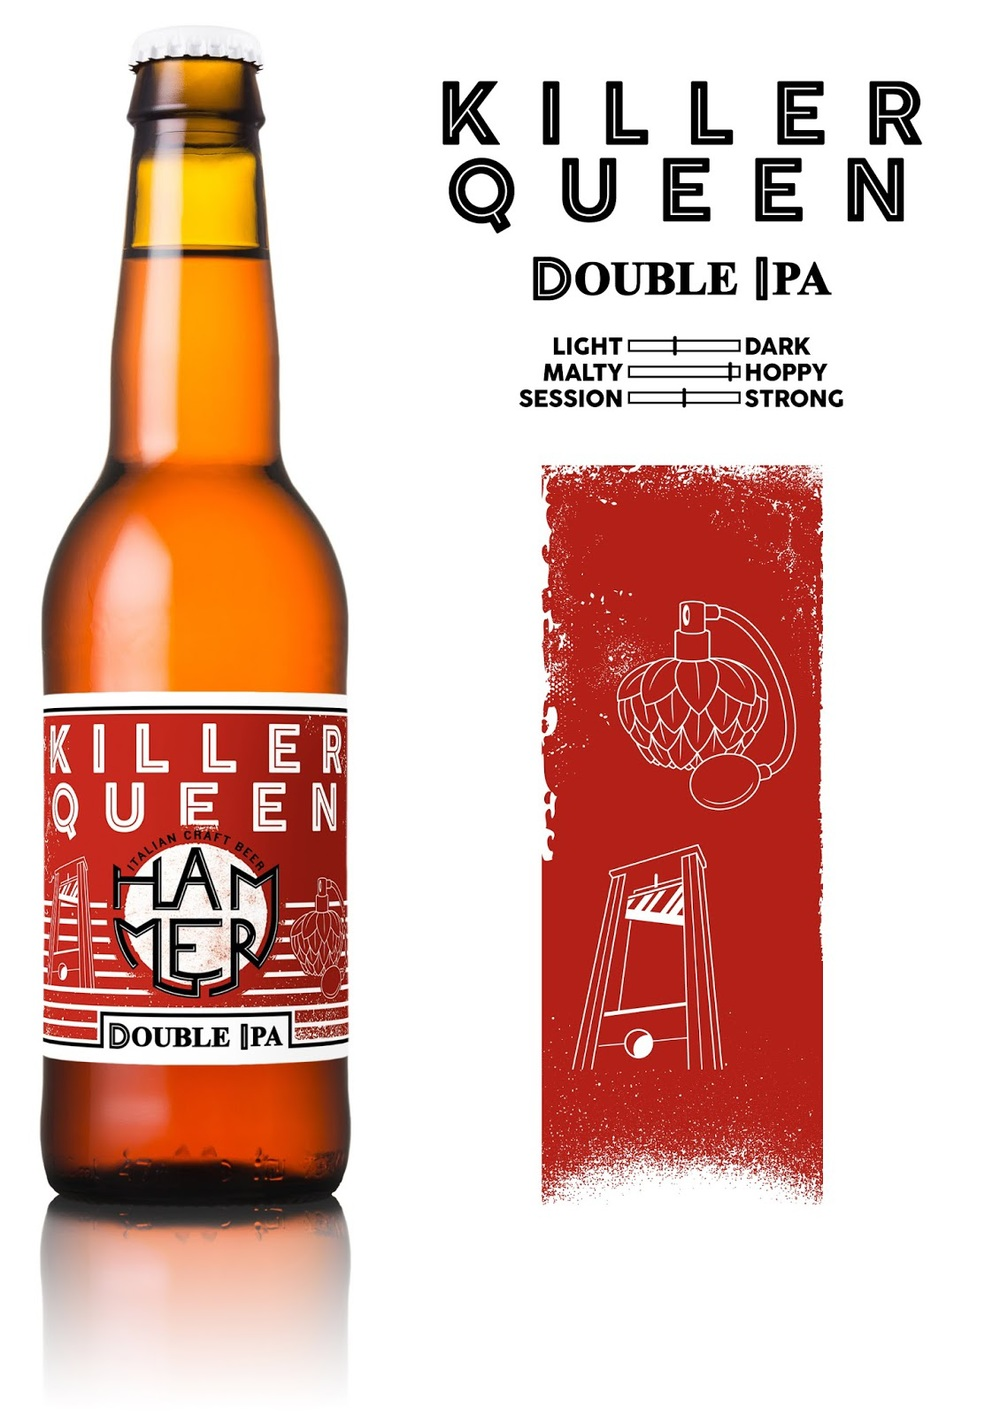 03_KILLER-QUEEN_double-ipa.jpg